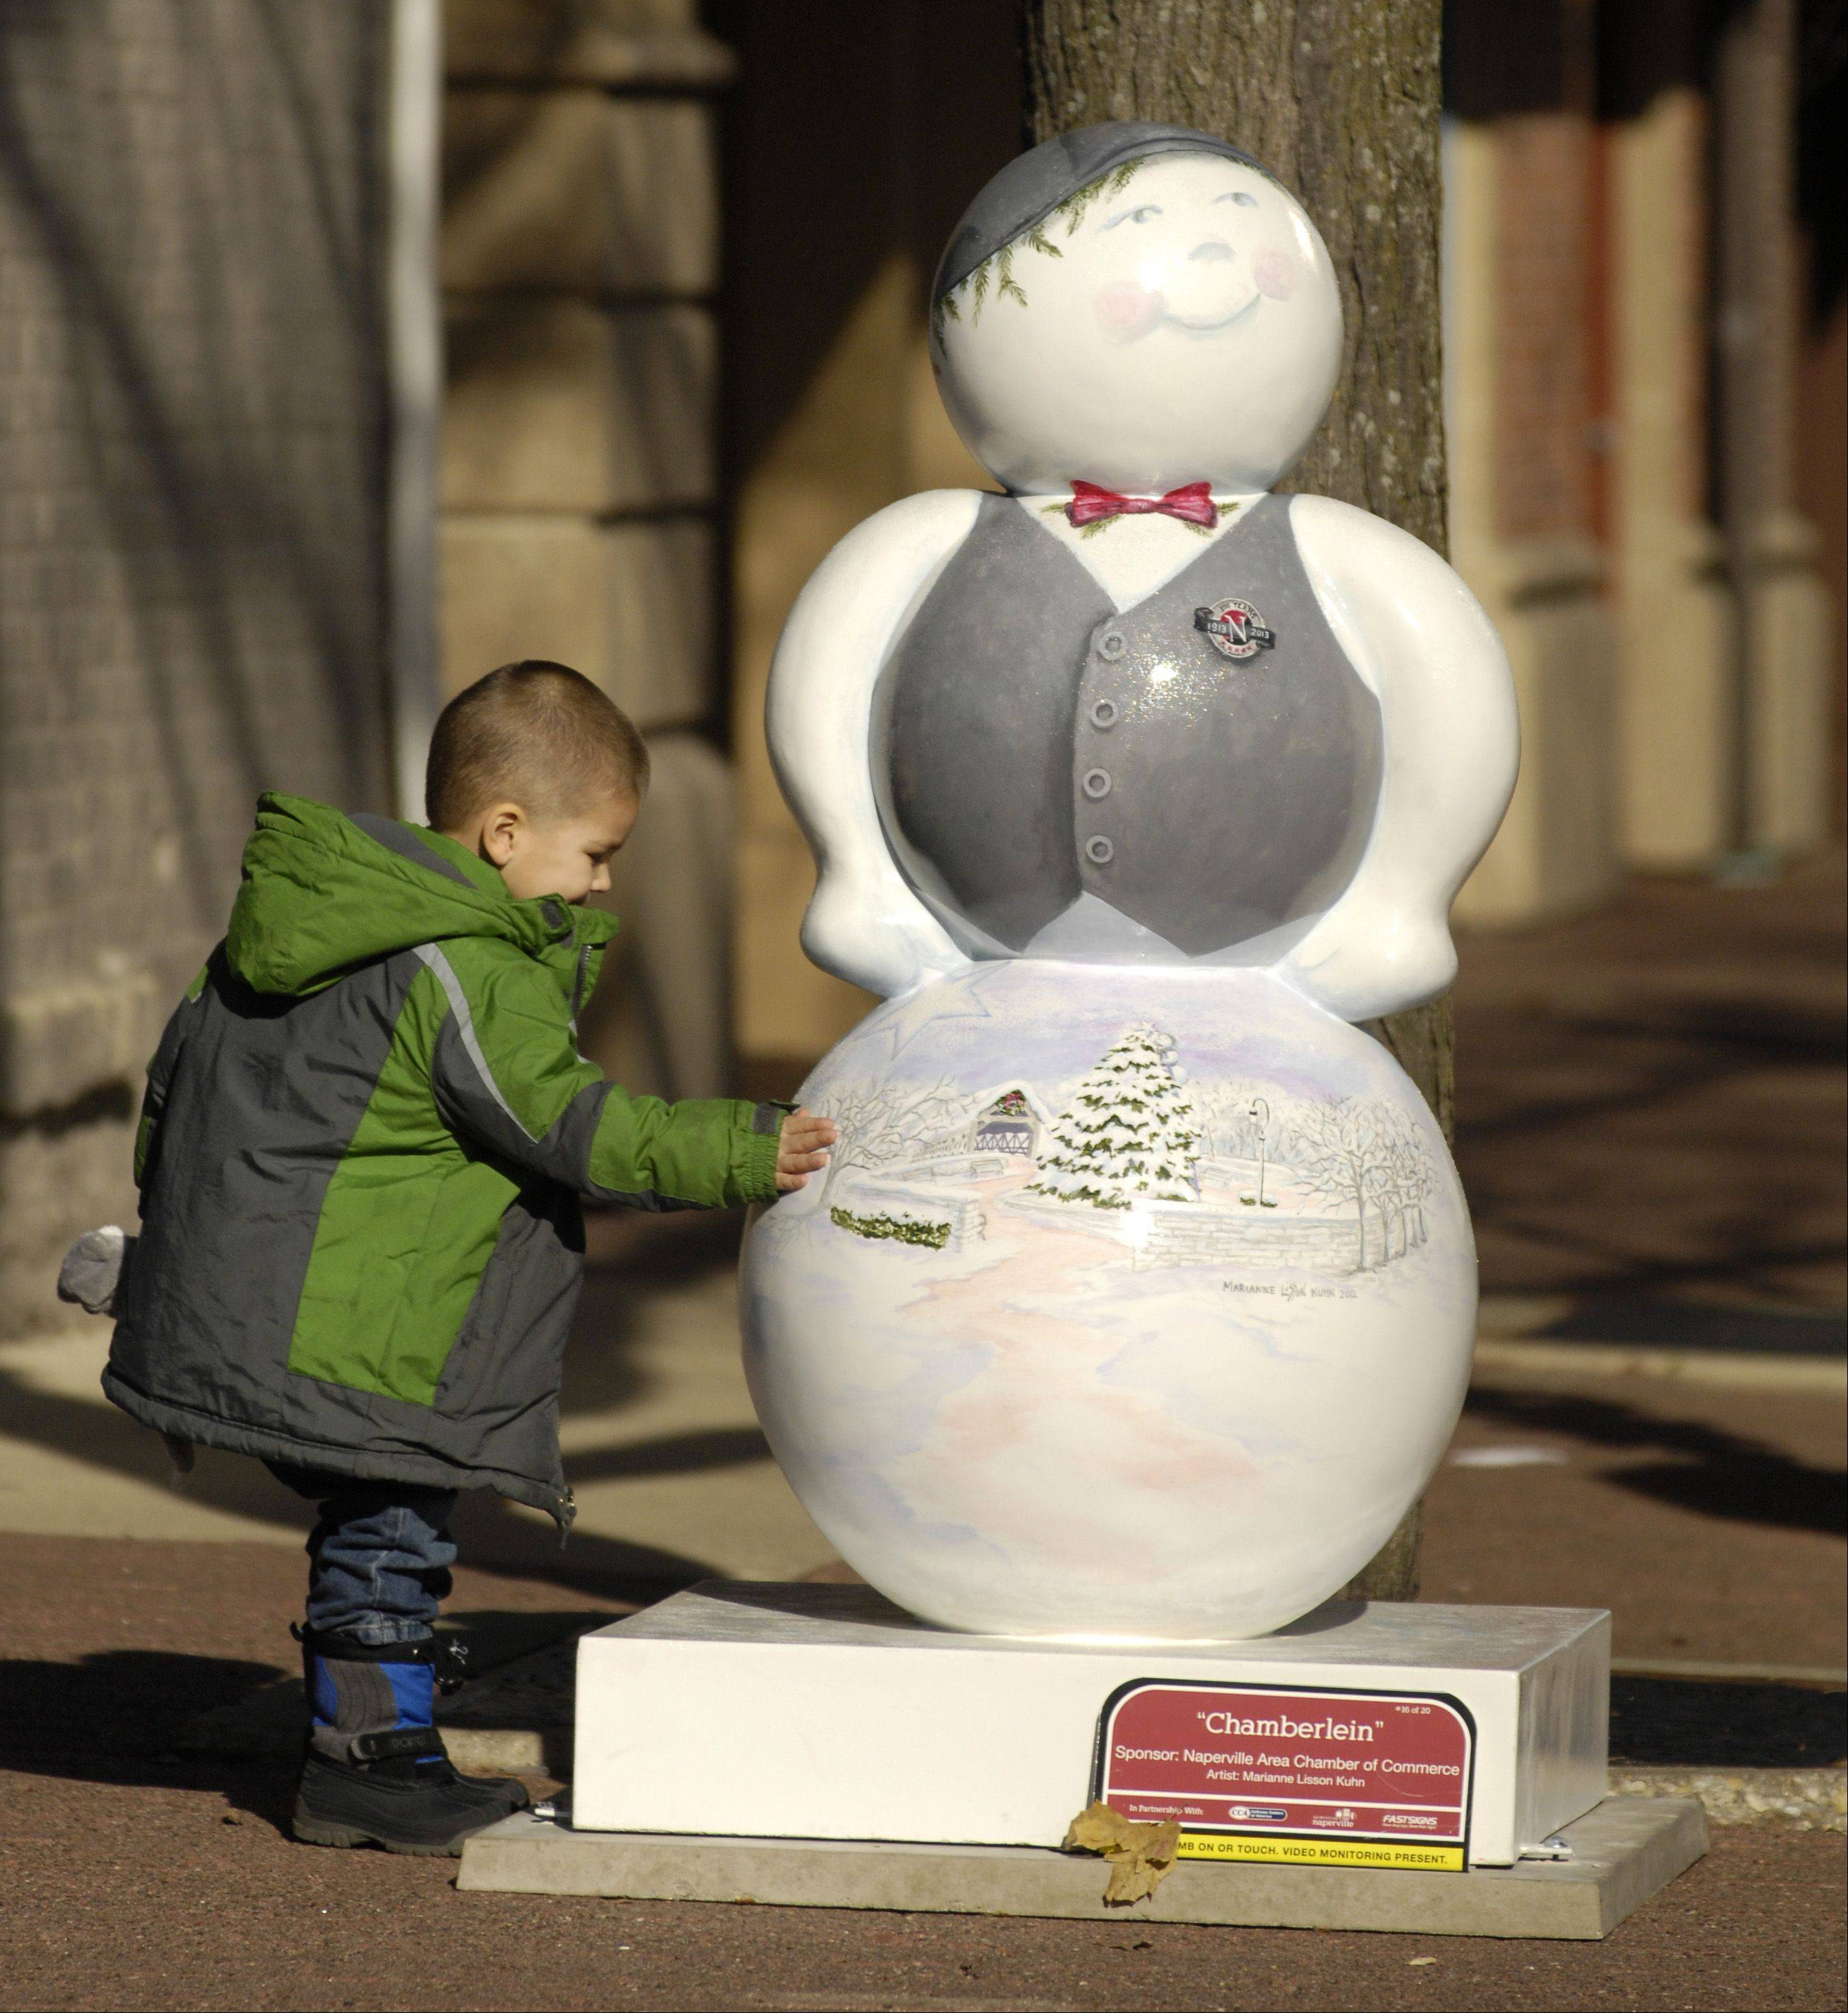 Downtown Naperville Alliance brought 20 painted snowmen sculptures to the city last year, and a similar promotion will display 25 decorated gingerbread men in downtown Naperville this year.